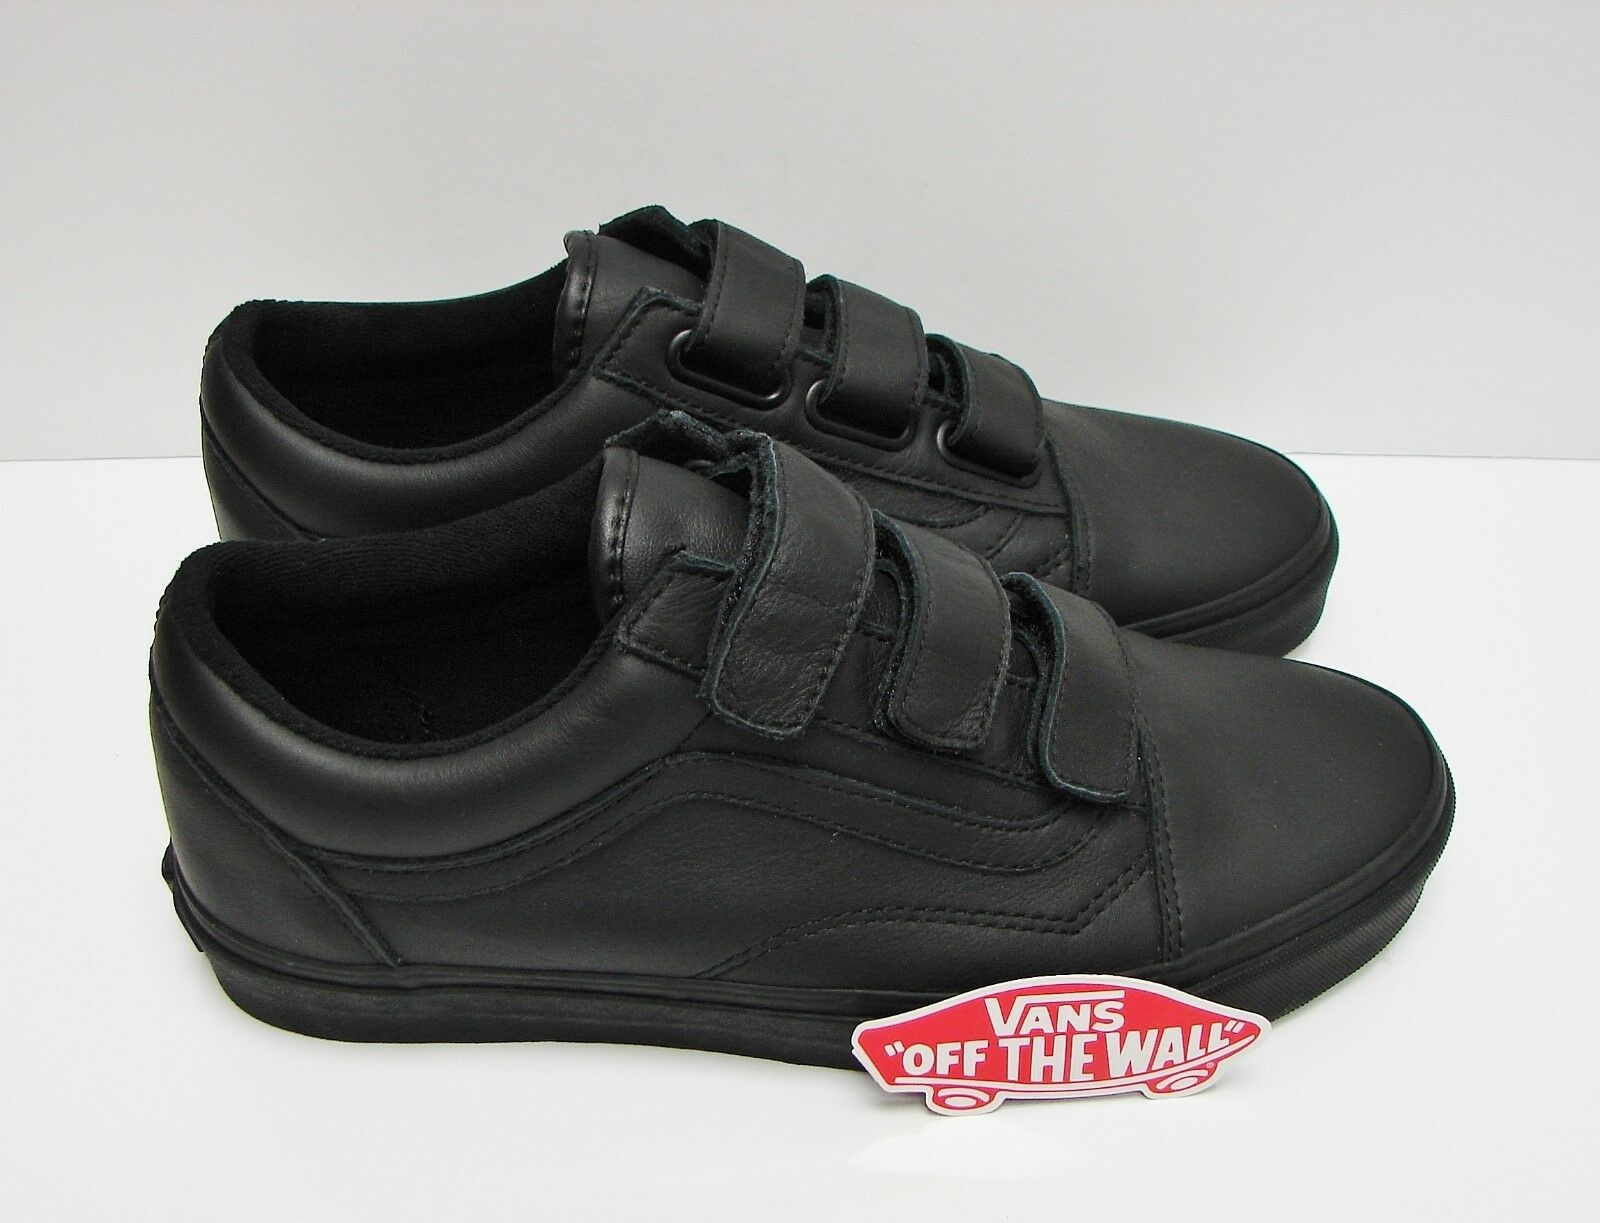 Vans Old Skool V Mono Leather Black VN0A3D29OOZ Men's Size  7.5